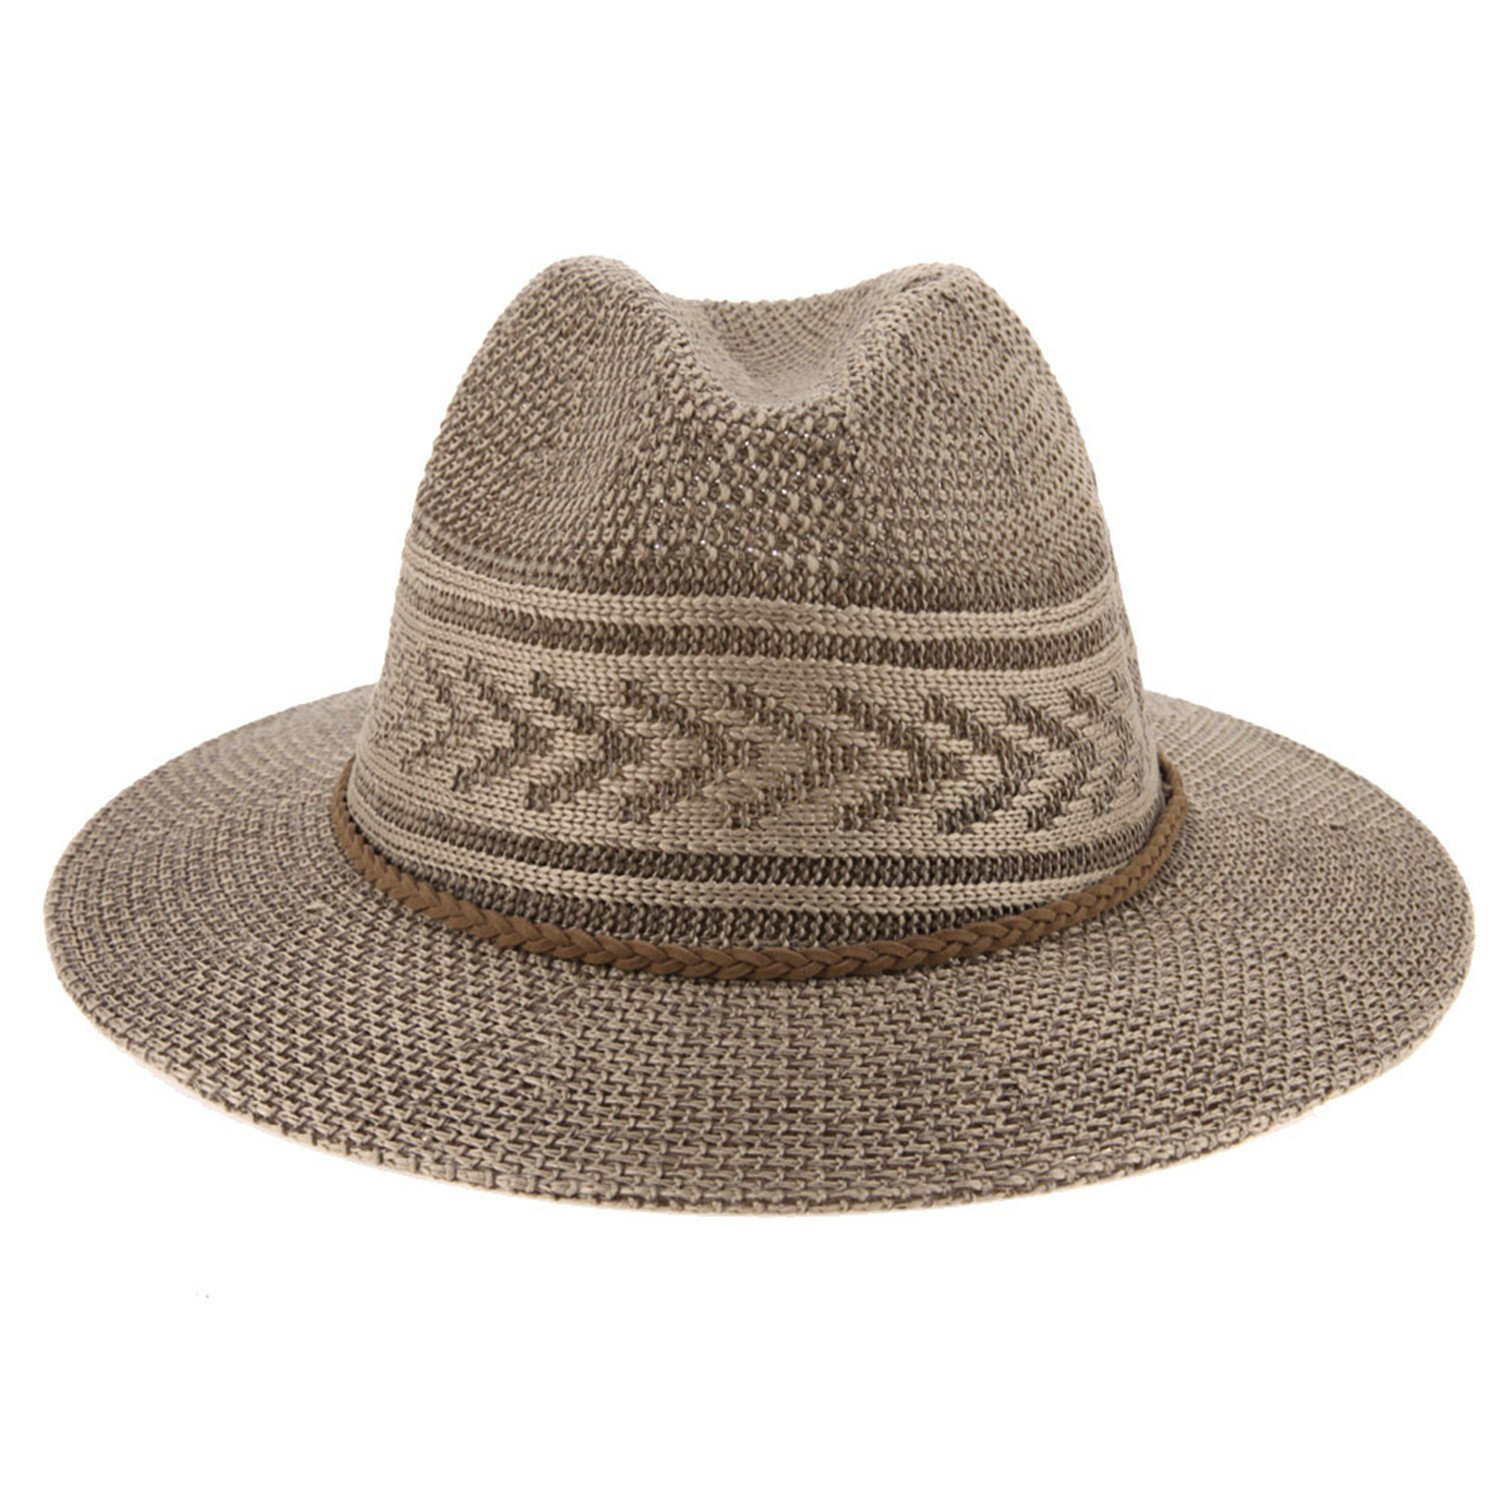 4dfab09a2638e Mainstream Straw Knitting Country Sun Hats for Women Wide Brim Summer  Women's Hats Casual Streetshot Summer Hats chapeu feminino NEW New,AsPicture